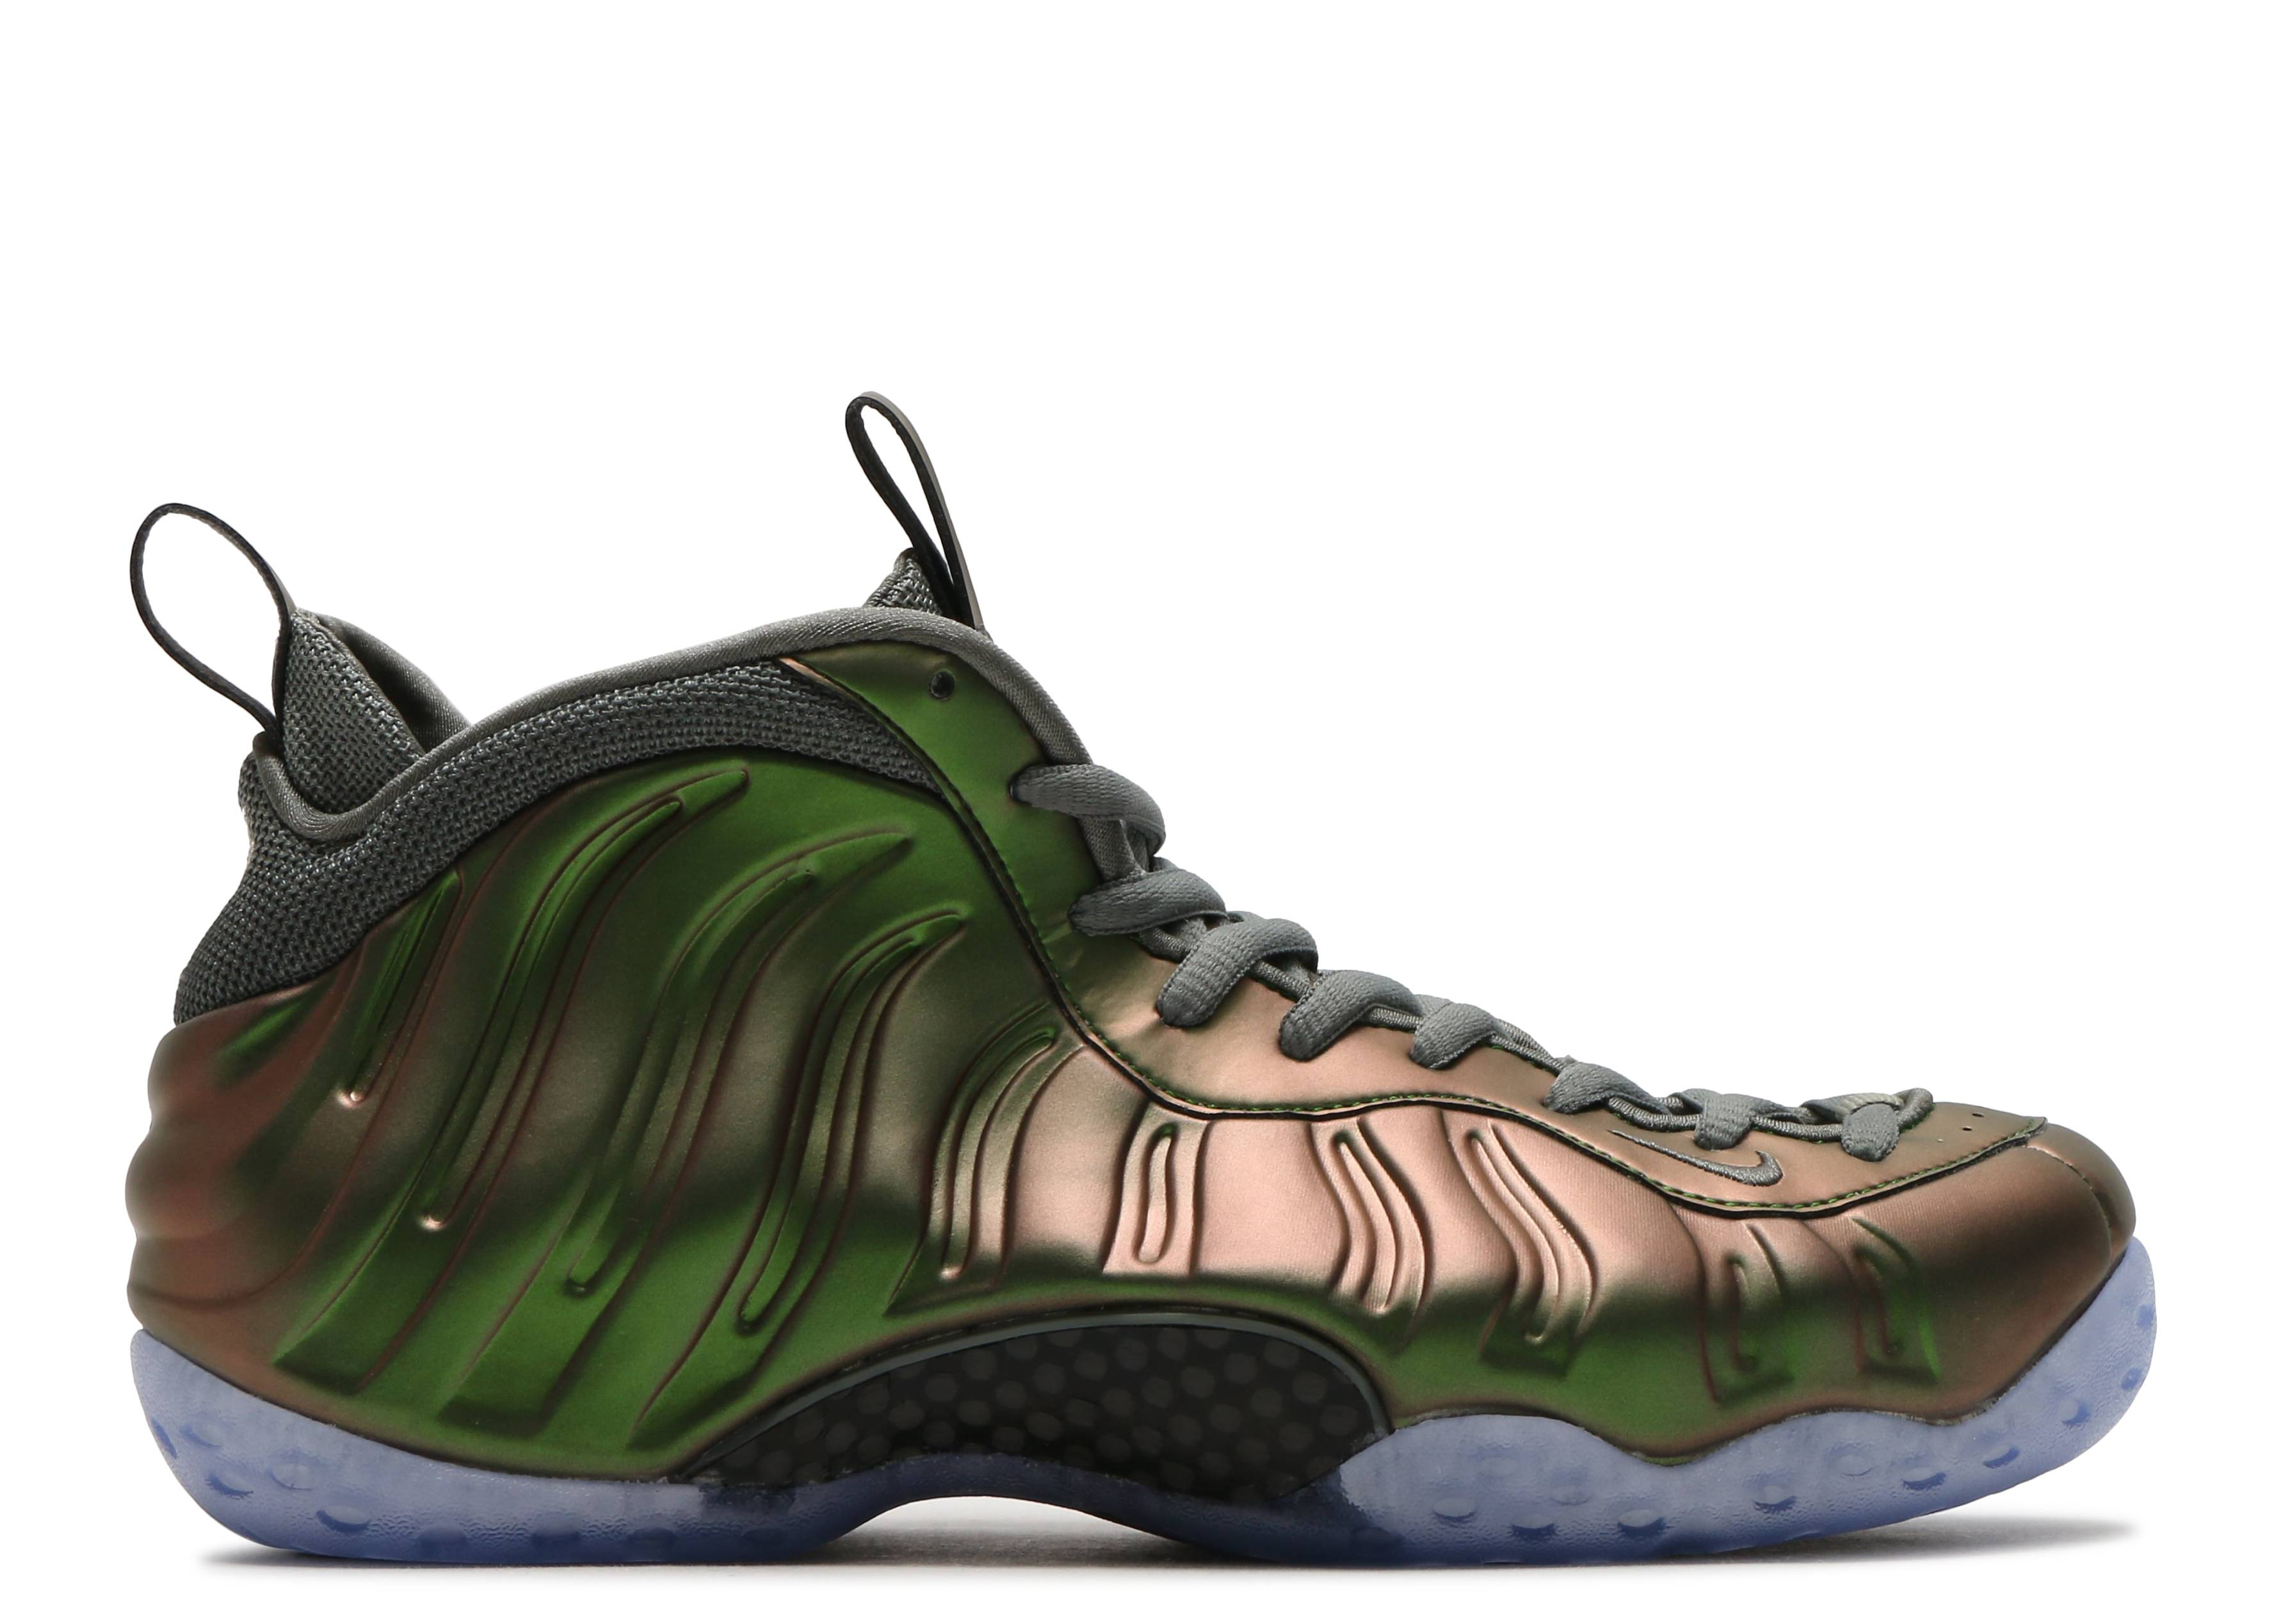 Nike Air Foamposite One Dark Stucco/Black Women's Basketball Shoes AA3963-001